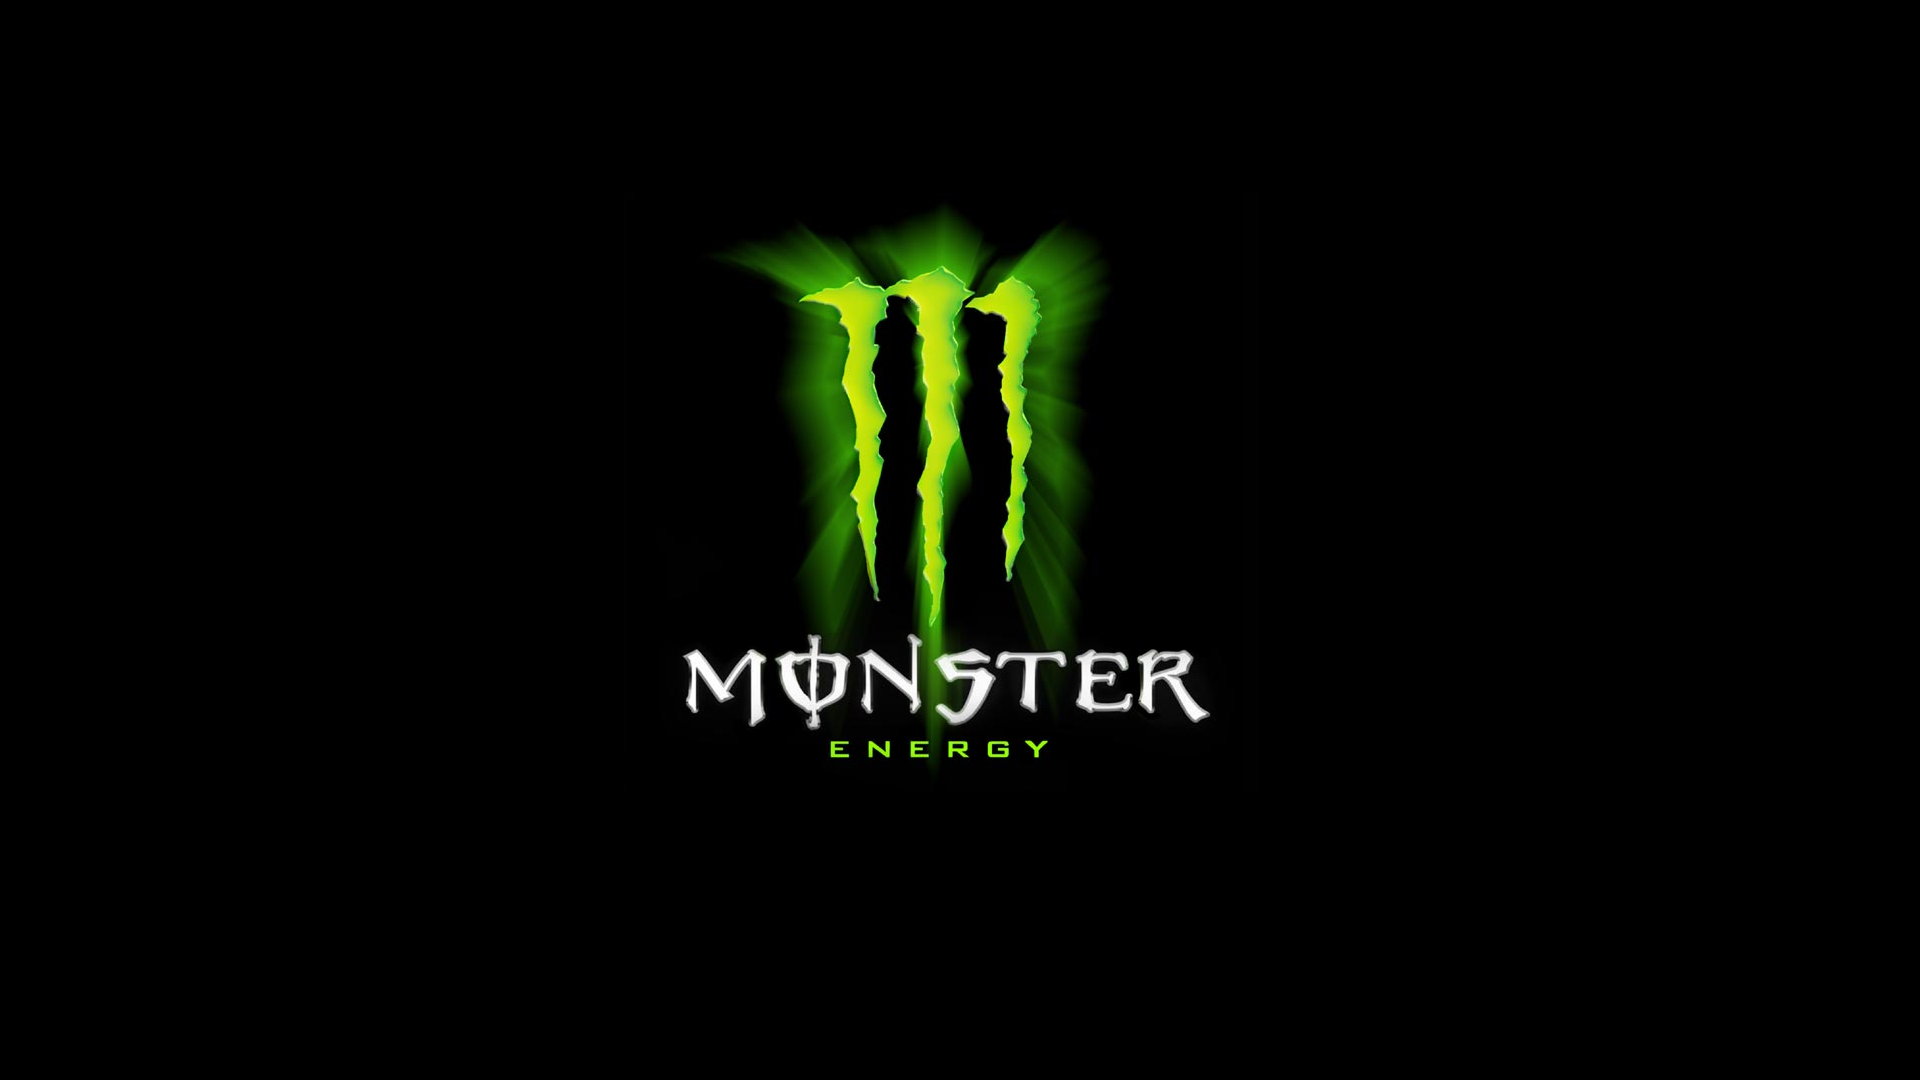 Description Monster Energy Logo Wallpaper is a hi res Wallpaper for 1920x1080